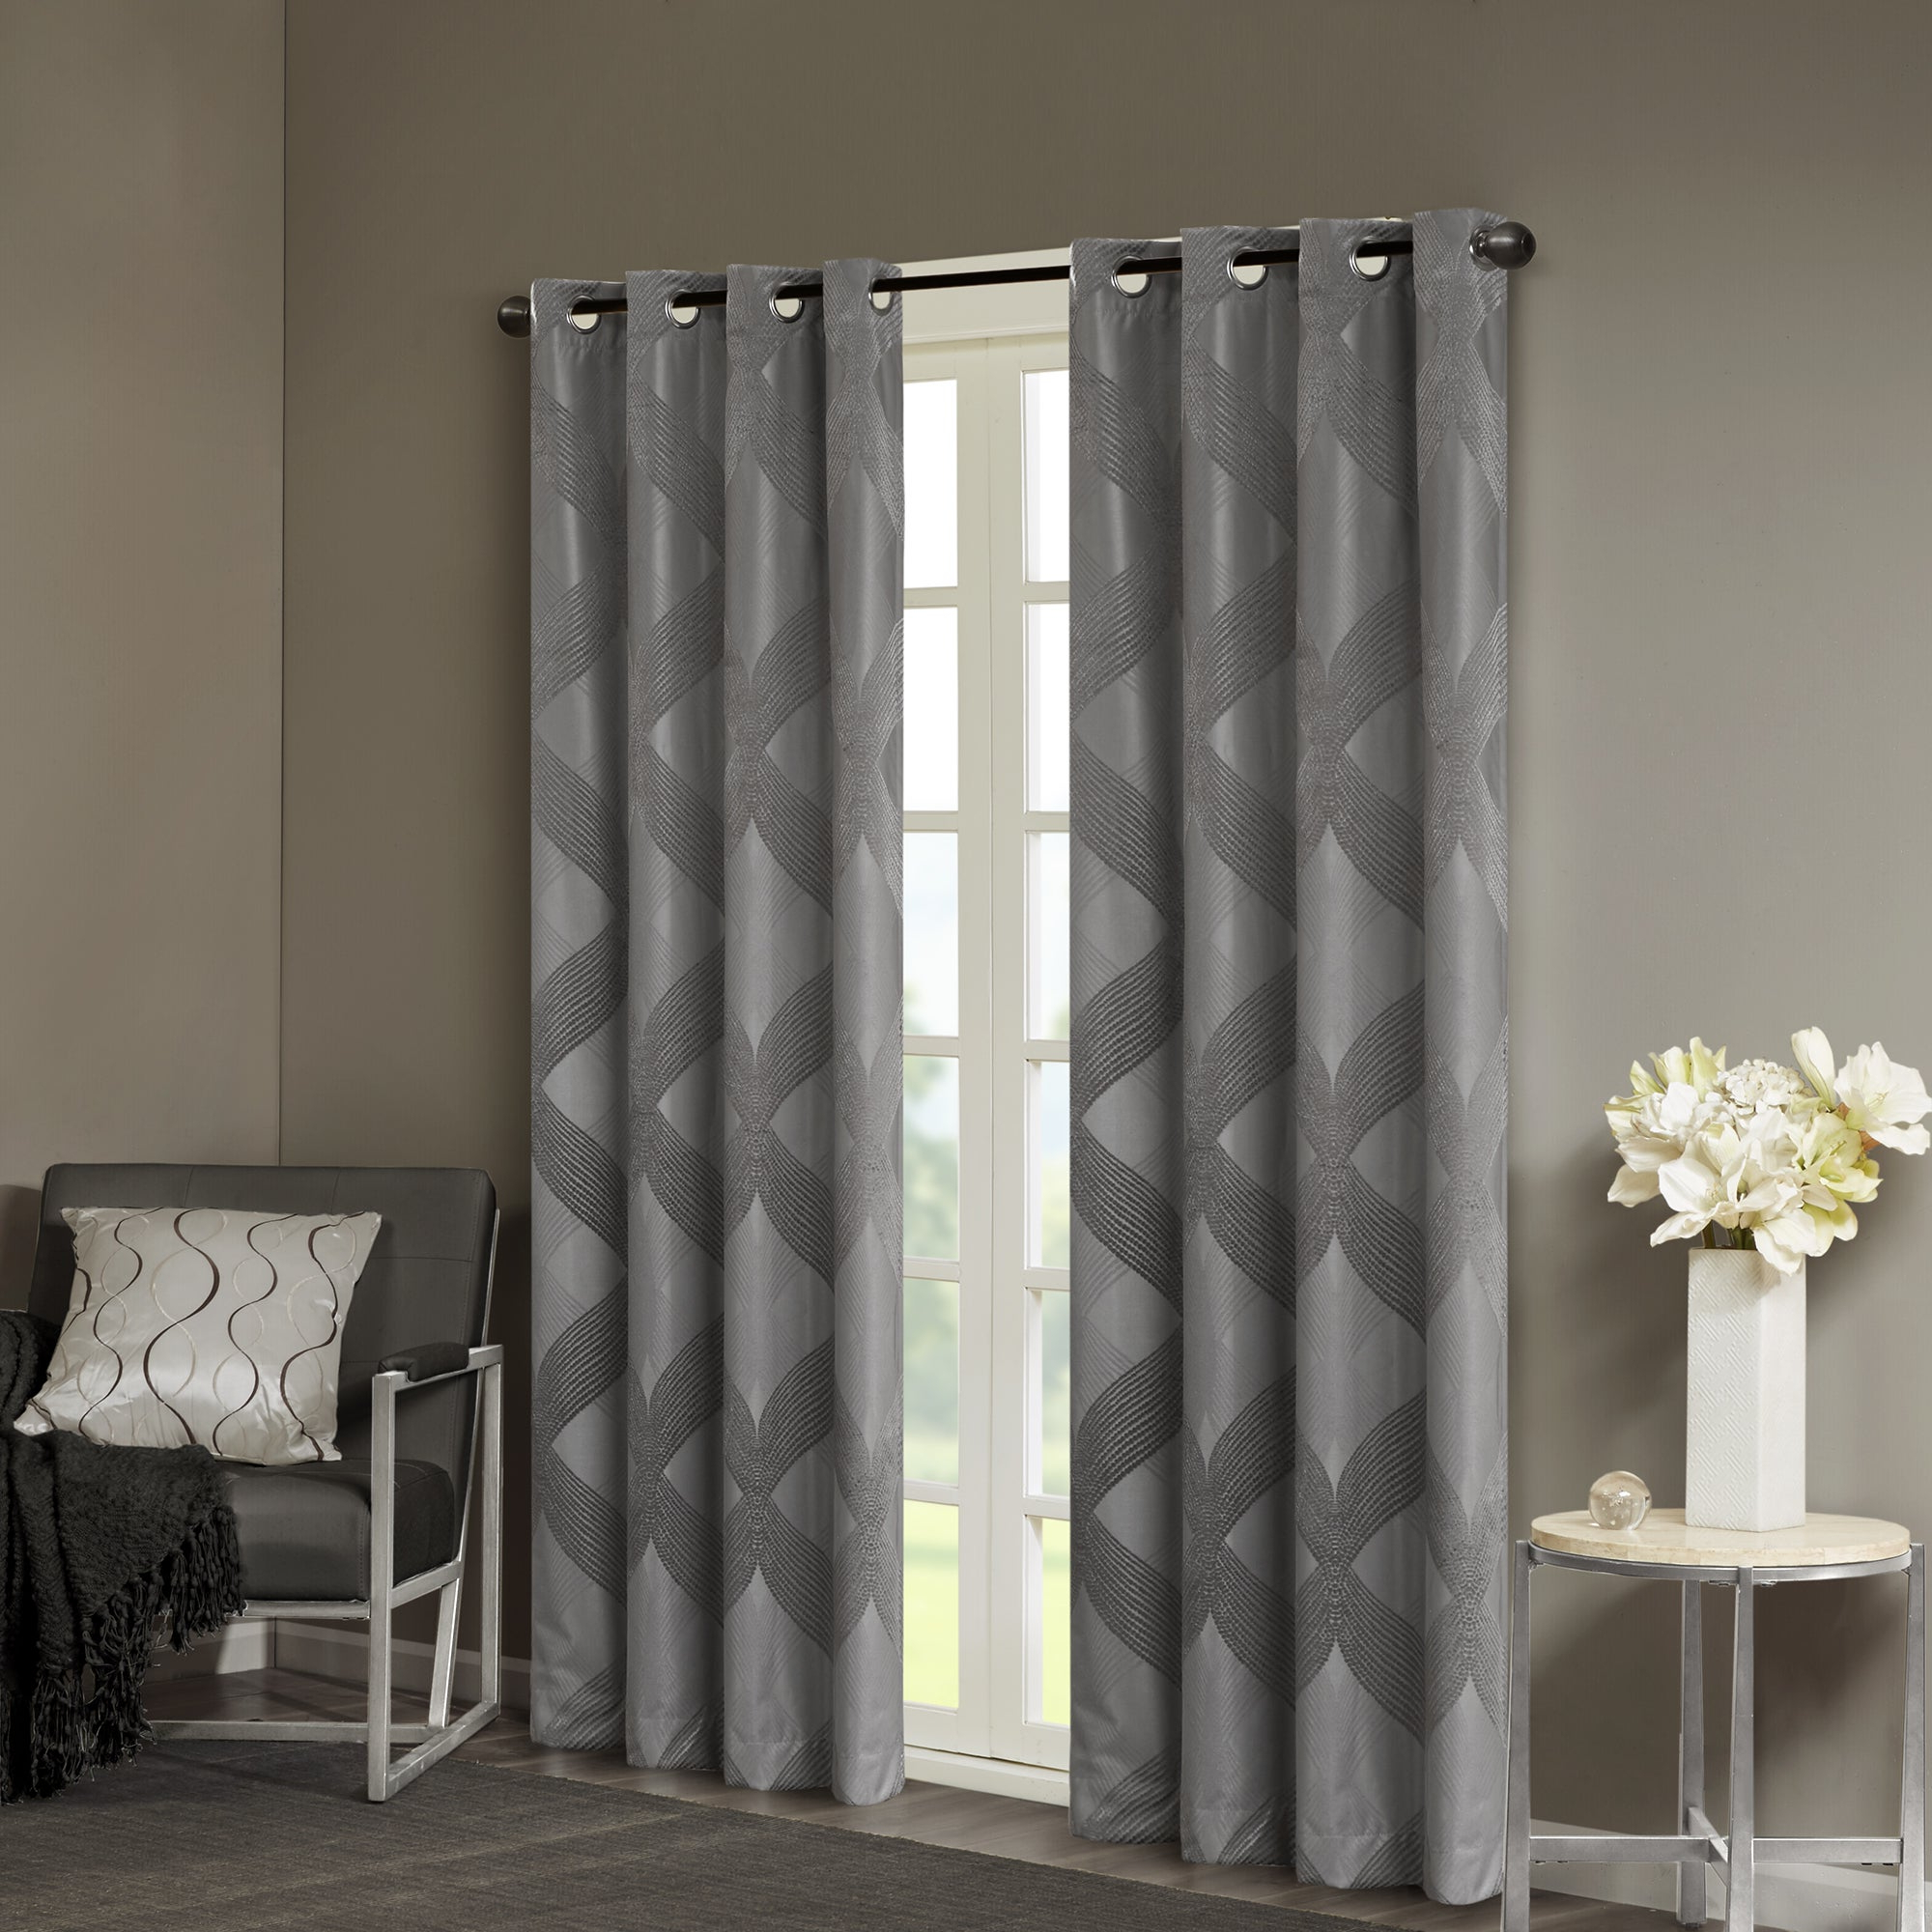 Sunsmart Abel Ogee Knitted Jacquard Total Blackout Curtain Panels Inside Widely Used Sunsmart Abel Ogee Knitted Jacquard Total Blackout Curtain Panel (View 5 of 20)